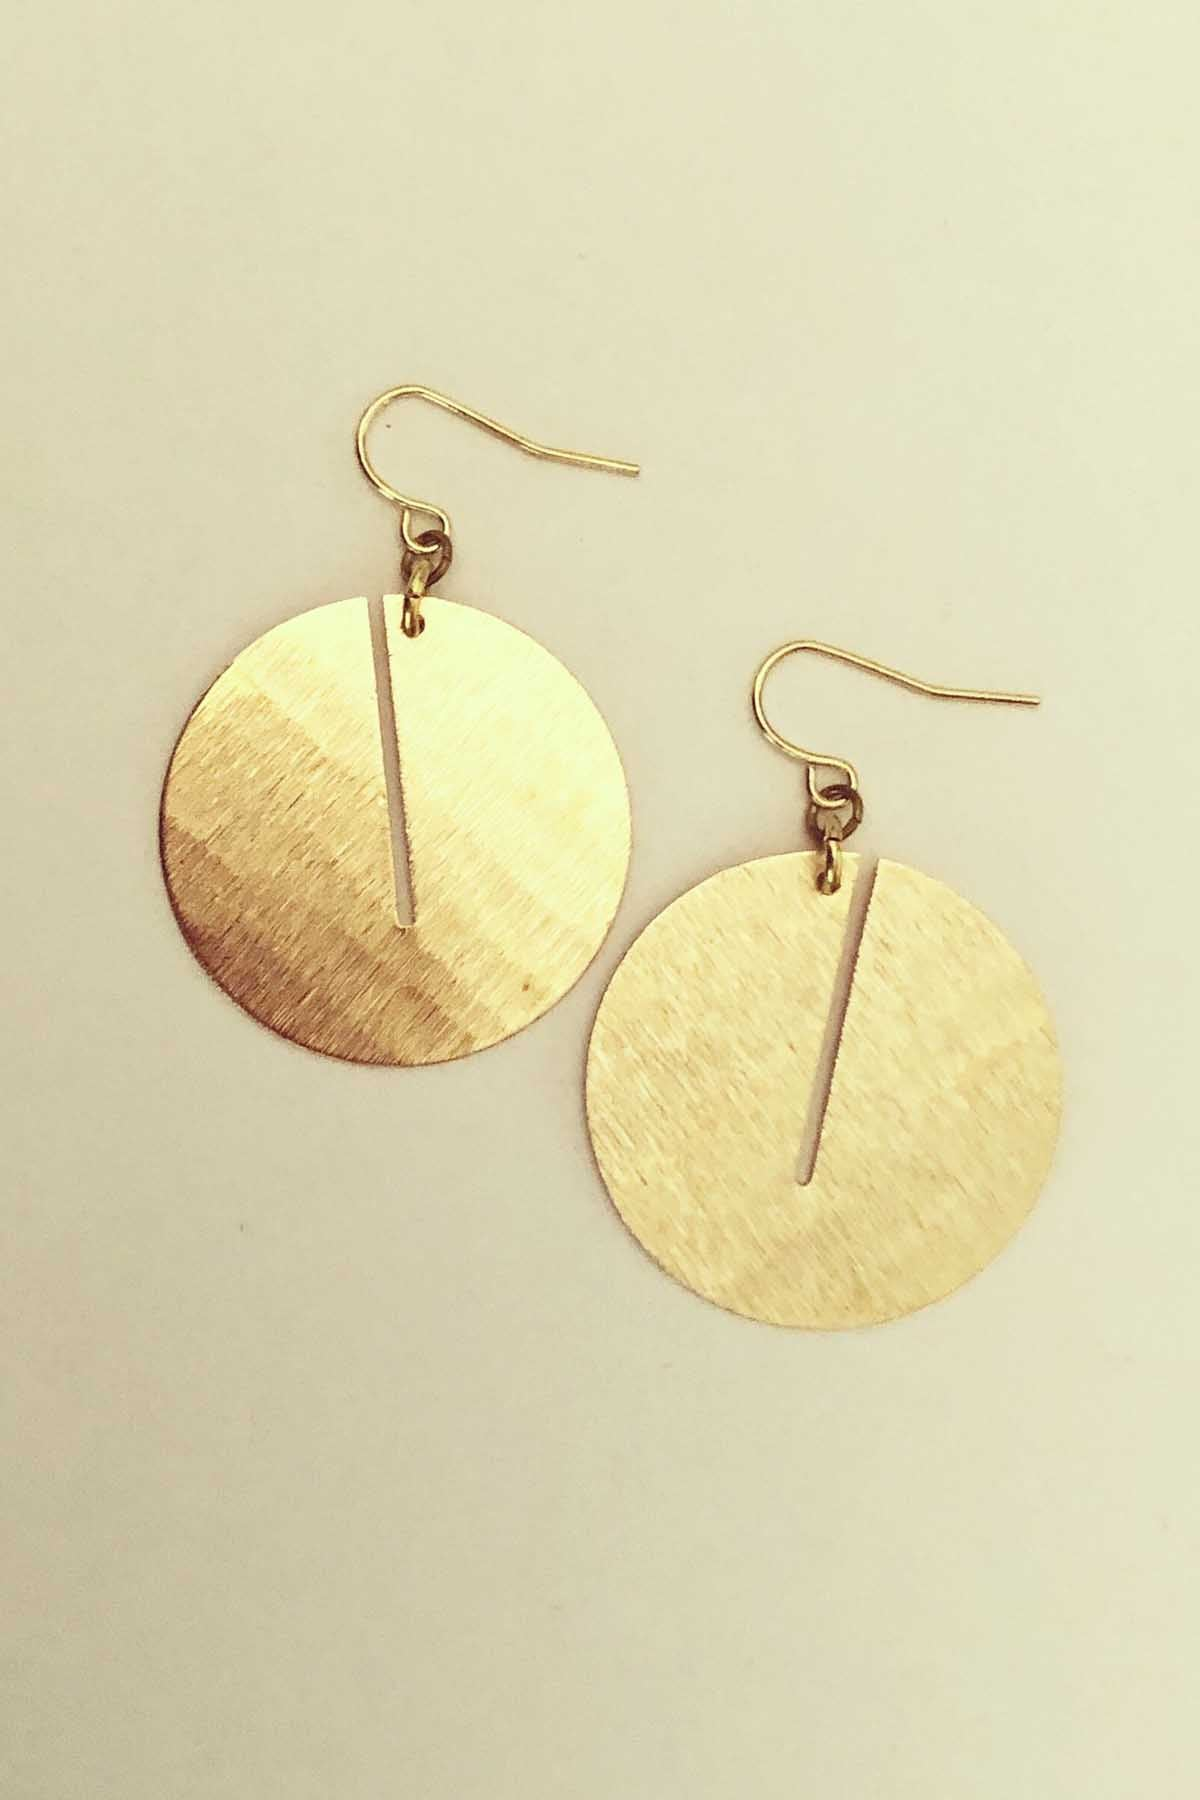 Eghah Earrings by Darlings of Denmark, brushed raw brass, circular dangle, circles with slits, made in Montreal